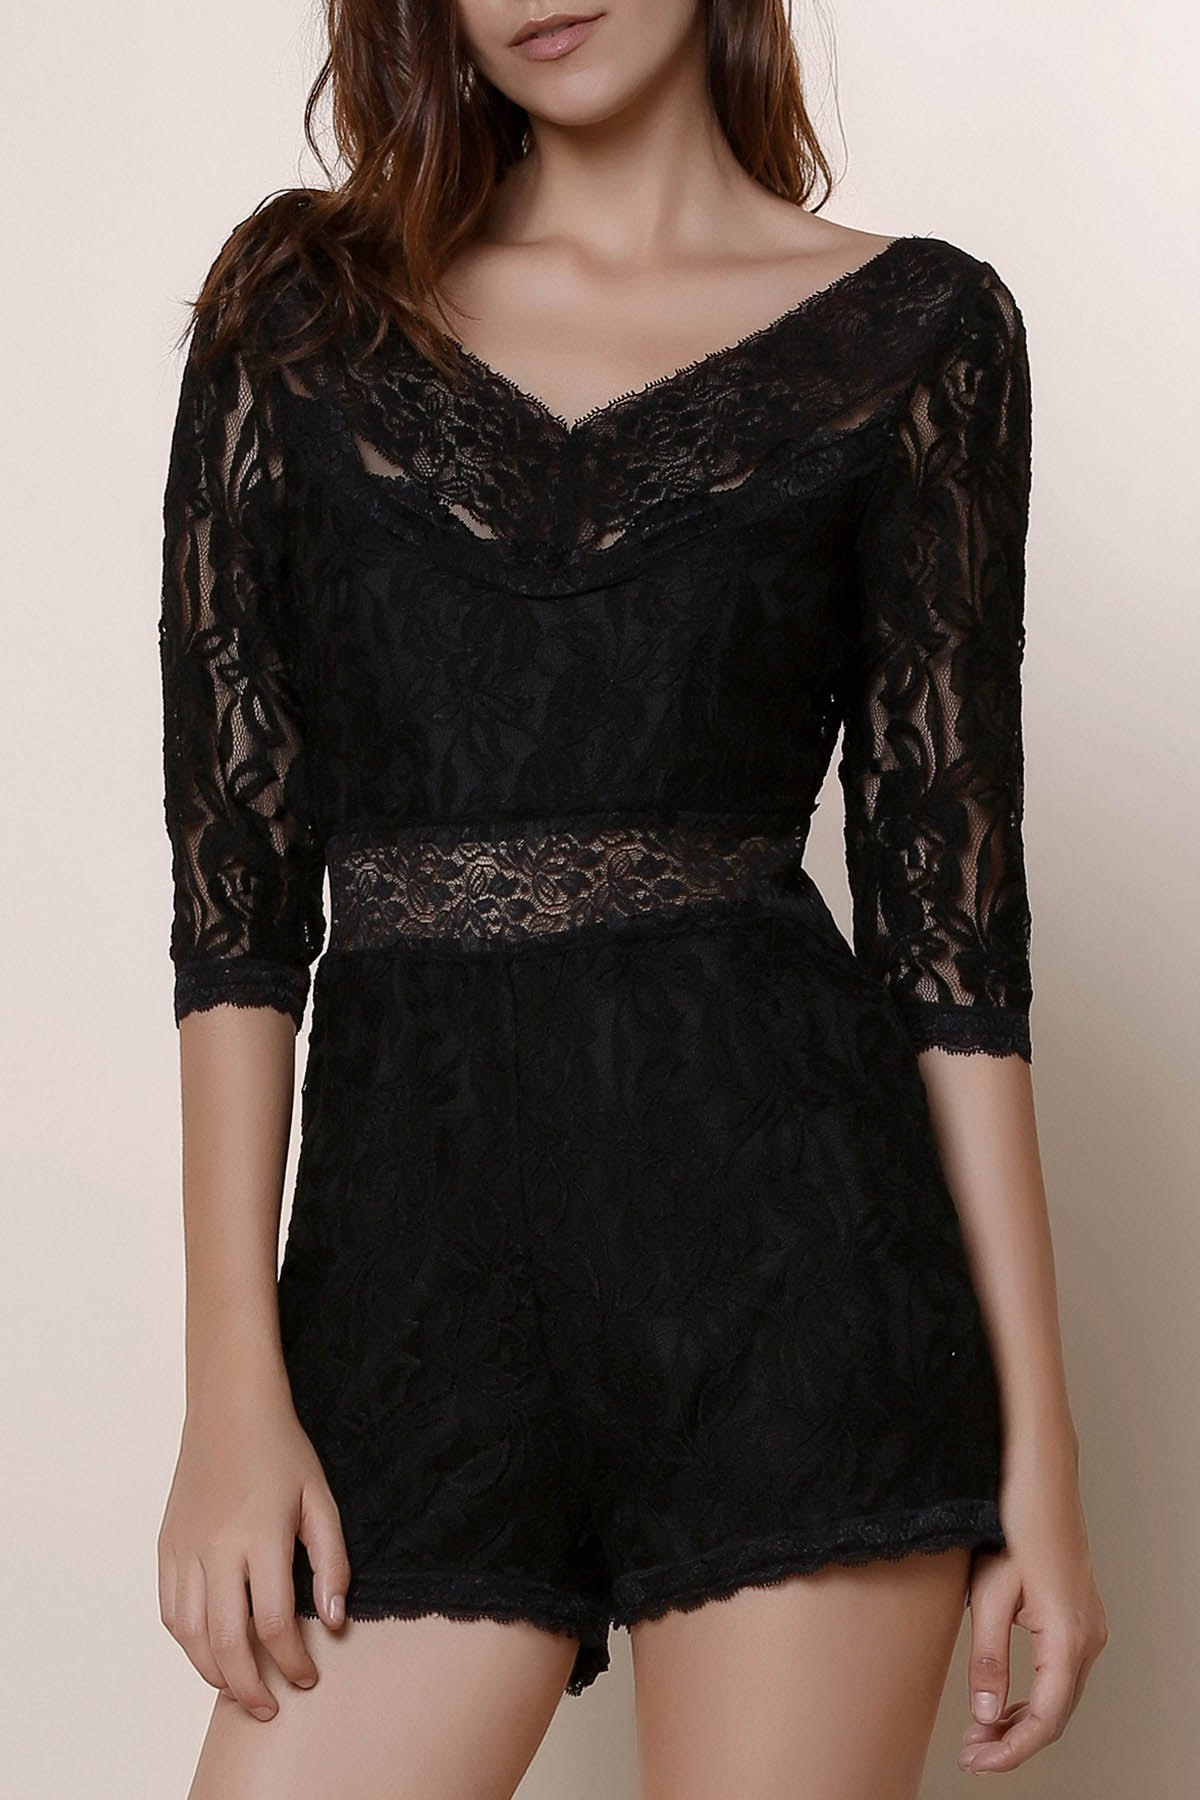 Trendy Women's V-Neck 3/4 Sleeve See-Through Lace Romper - BLACK S